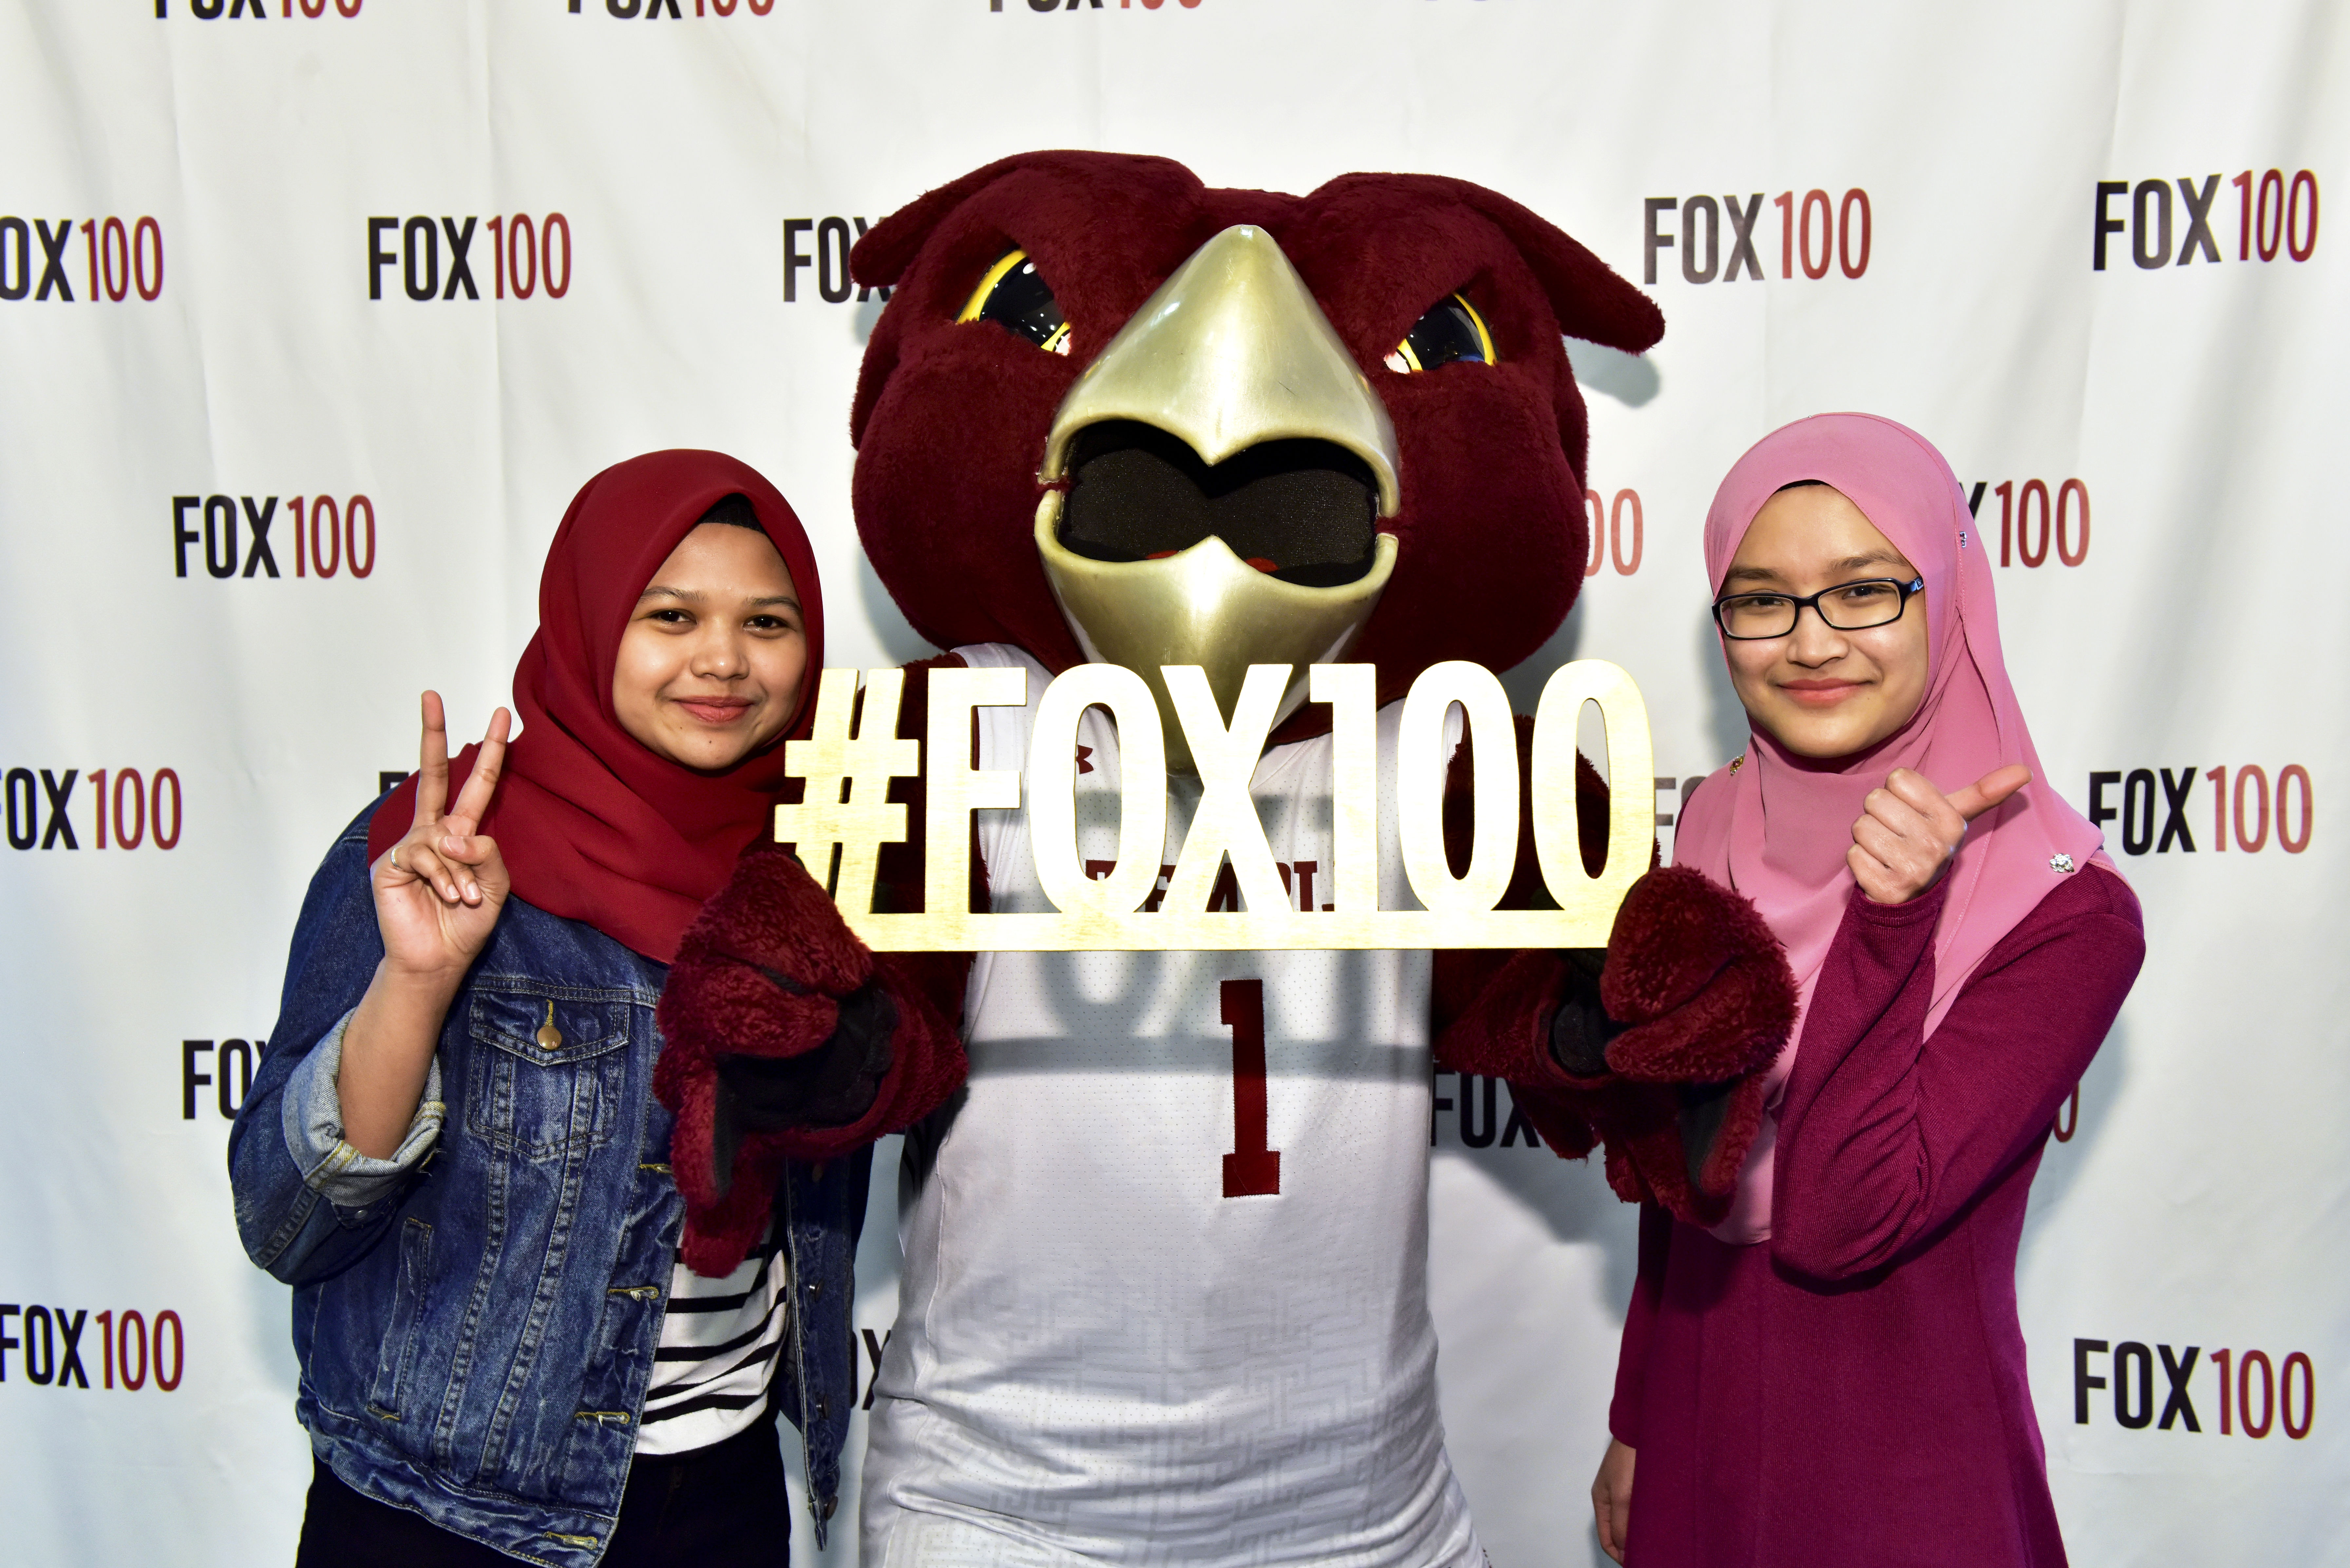 Hooter, the Temple mascot, helps celebrate 100 years of education at Fox.